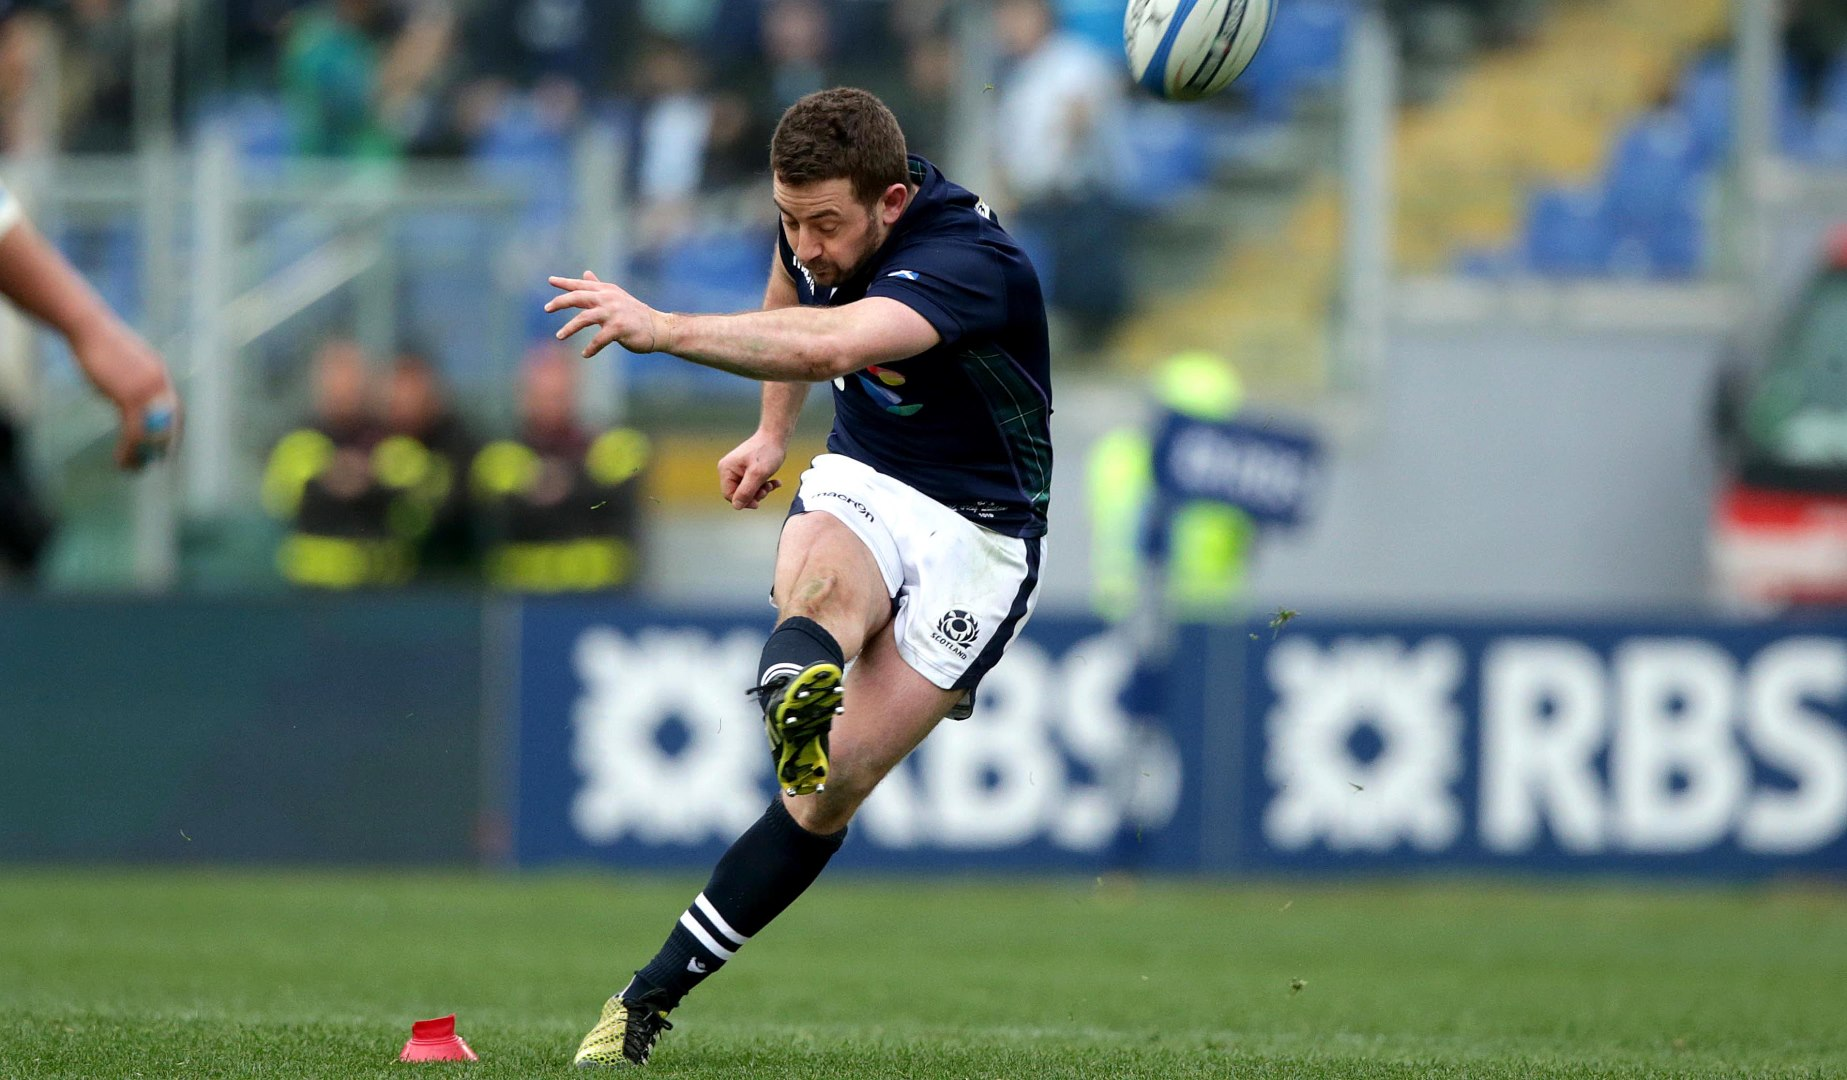 LionsWatch: Laidlaw kicks Gloucester to their first win of the season